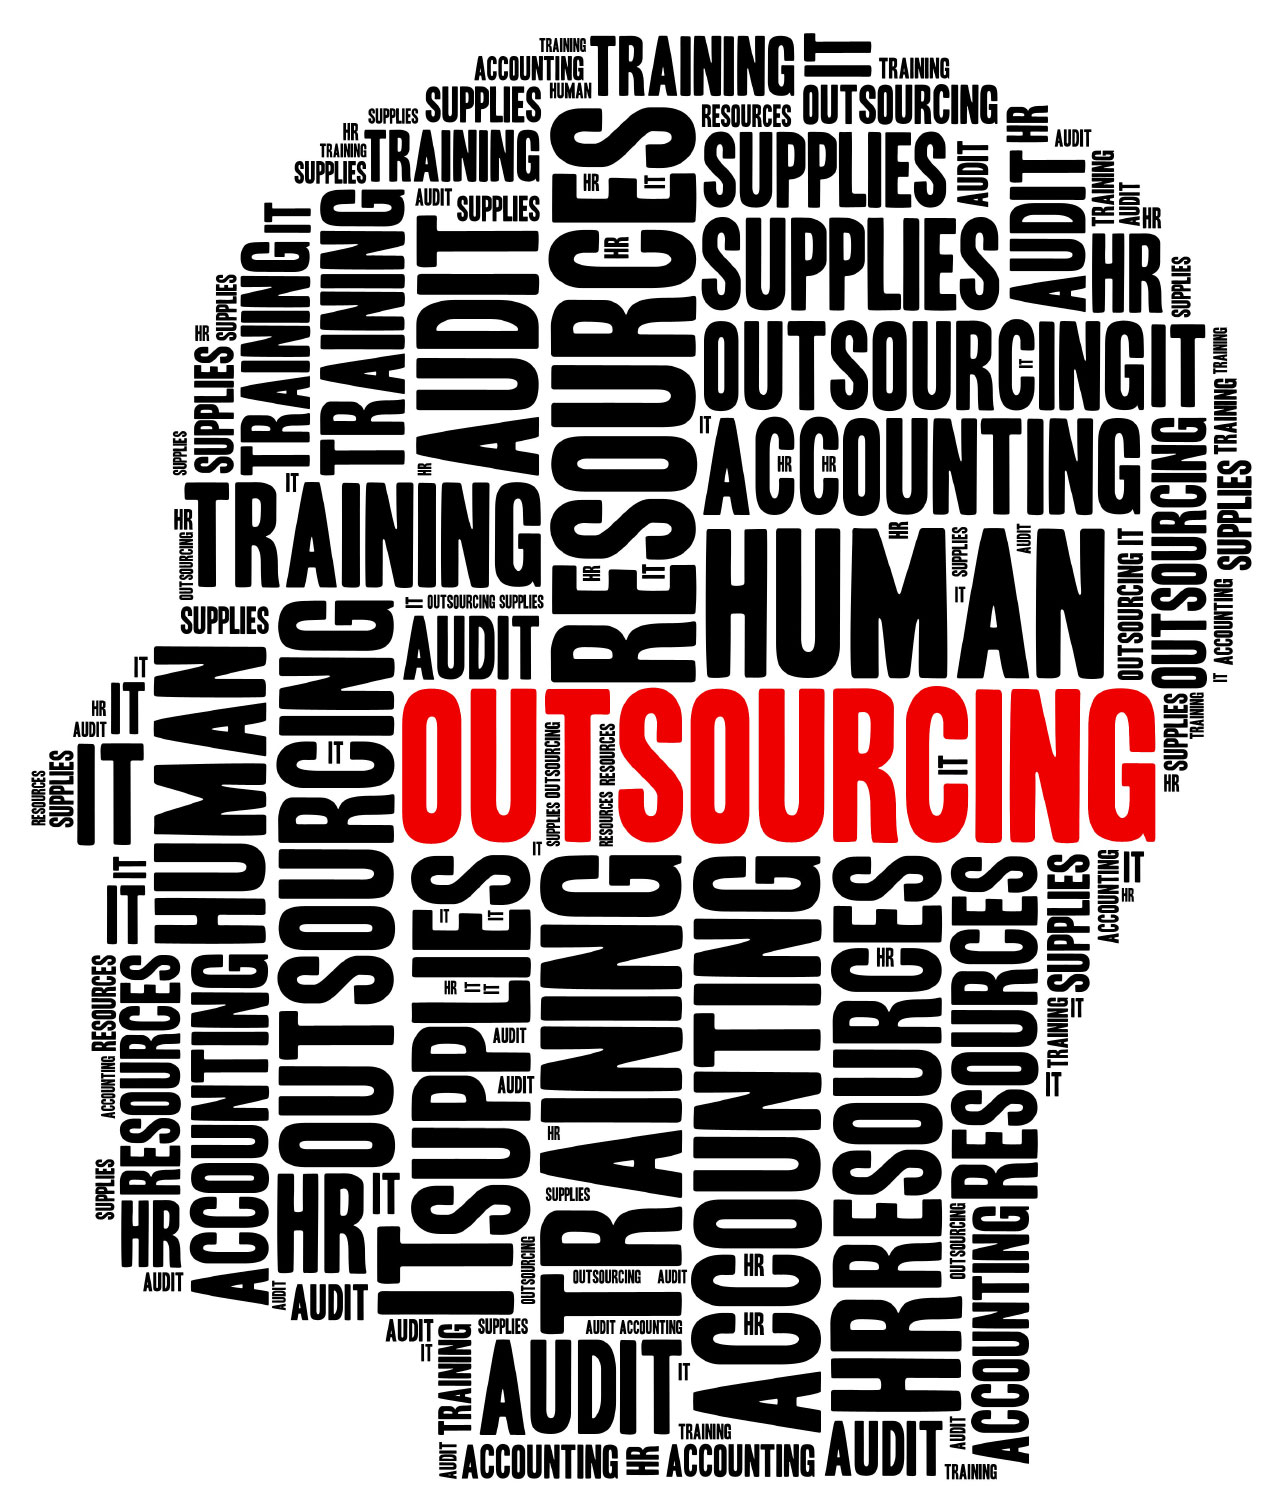 outsourcing in human resource Restaurant chain partners with oasis outsourcing to grow its business hospitality clients, such as restaurants tend to have unique challenges related to employee turnover and compliance oasis outsourcing offers specific human resources solutions for the restaurant industry how it all.